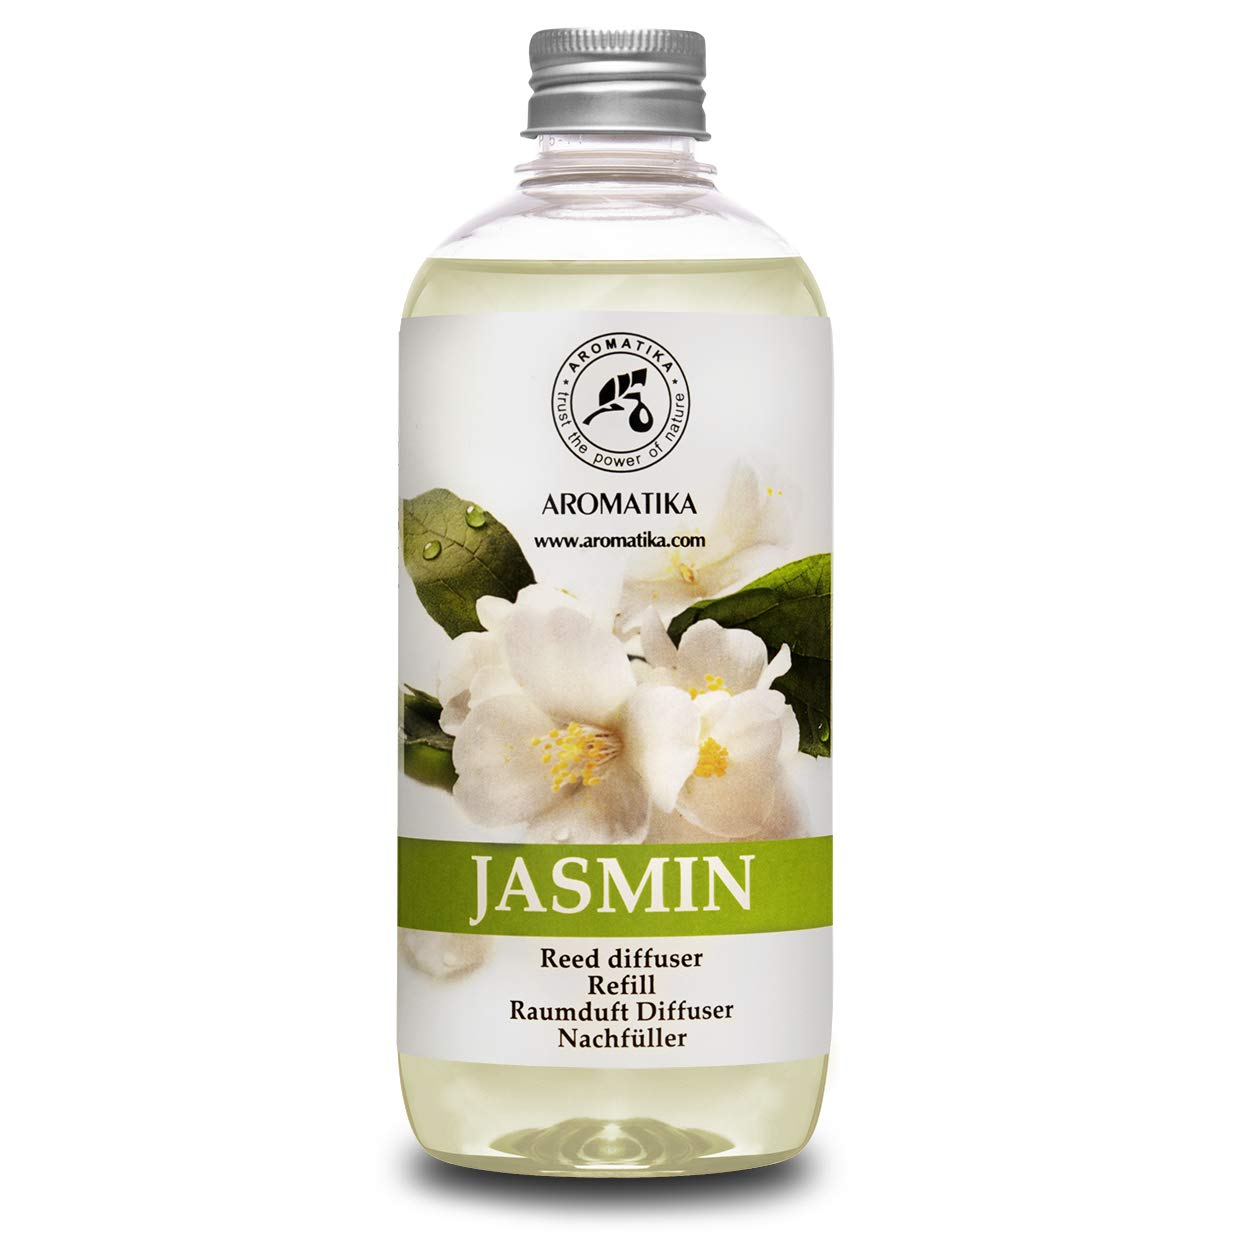 Jasmine Reed Diffuser Refill w/Natural Essential Jasmine Oil 500ml - Fresh & Long Lasting Fragrance - Scented Reed Diffuser Oil Refill - 0% Alcohol - Best for Aromatherapy - SPA - Home